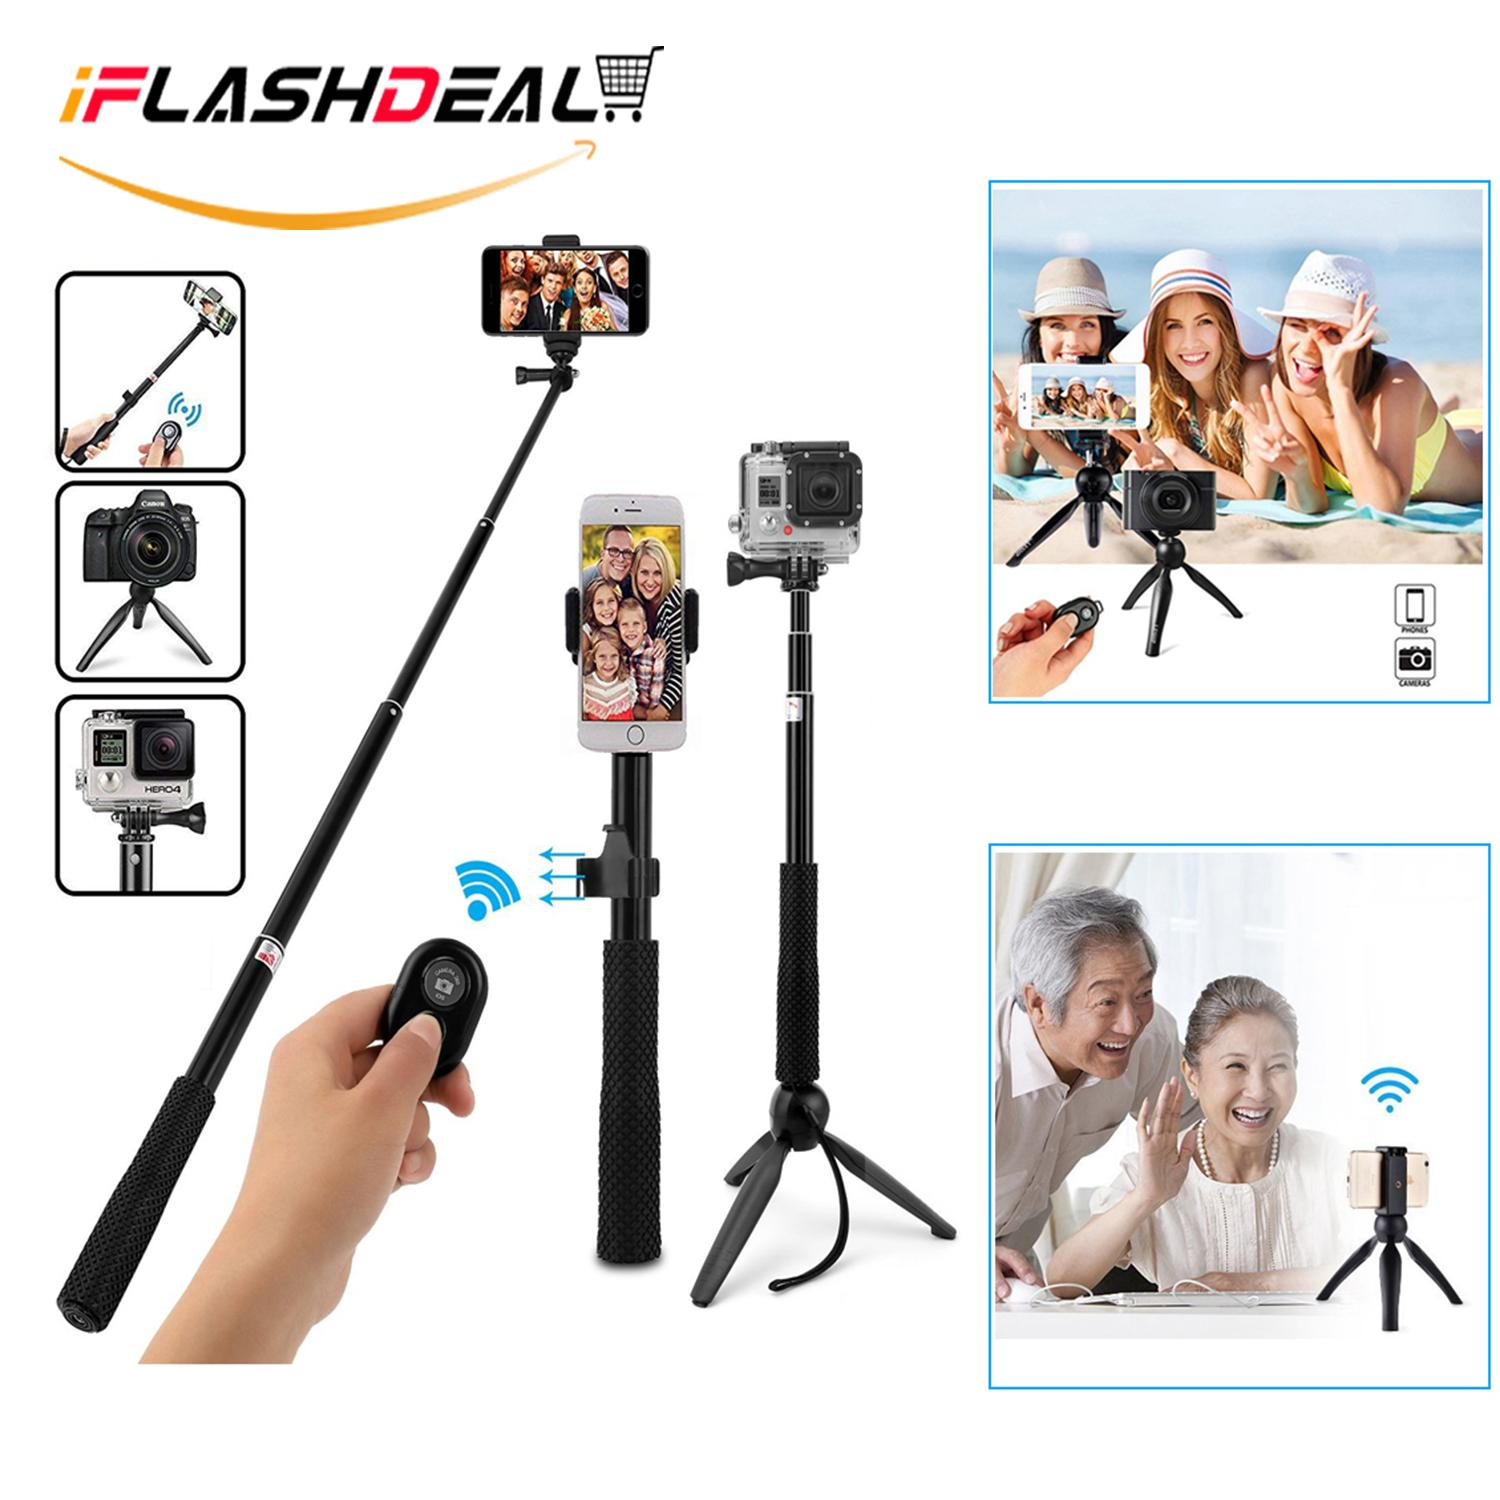 Selfie Sticks For The Best Prices In Malaysia Tongsis Wireless Iflashdeal Bluetooth Stick Tripods Extendable With Remote And Tripod Stand